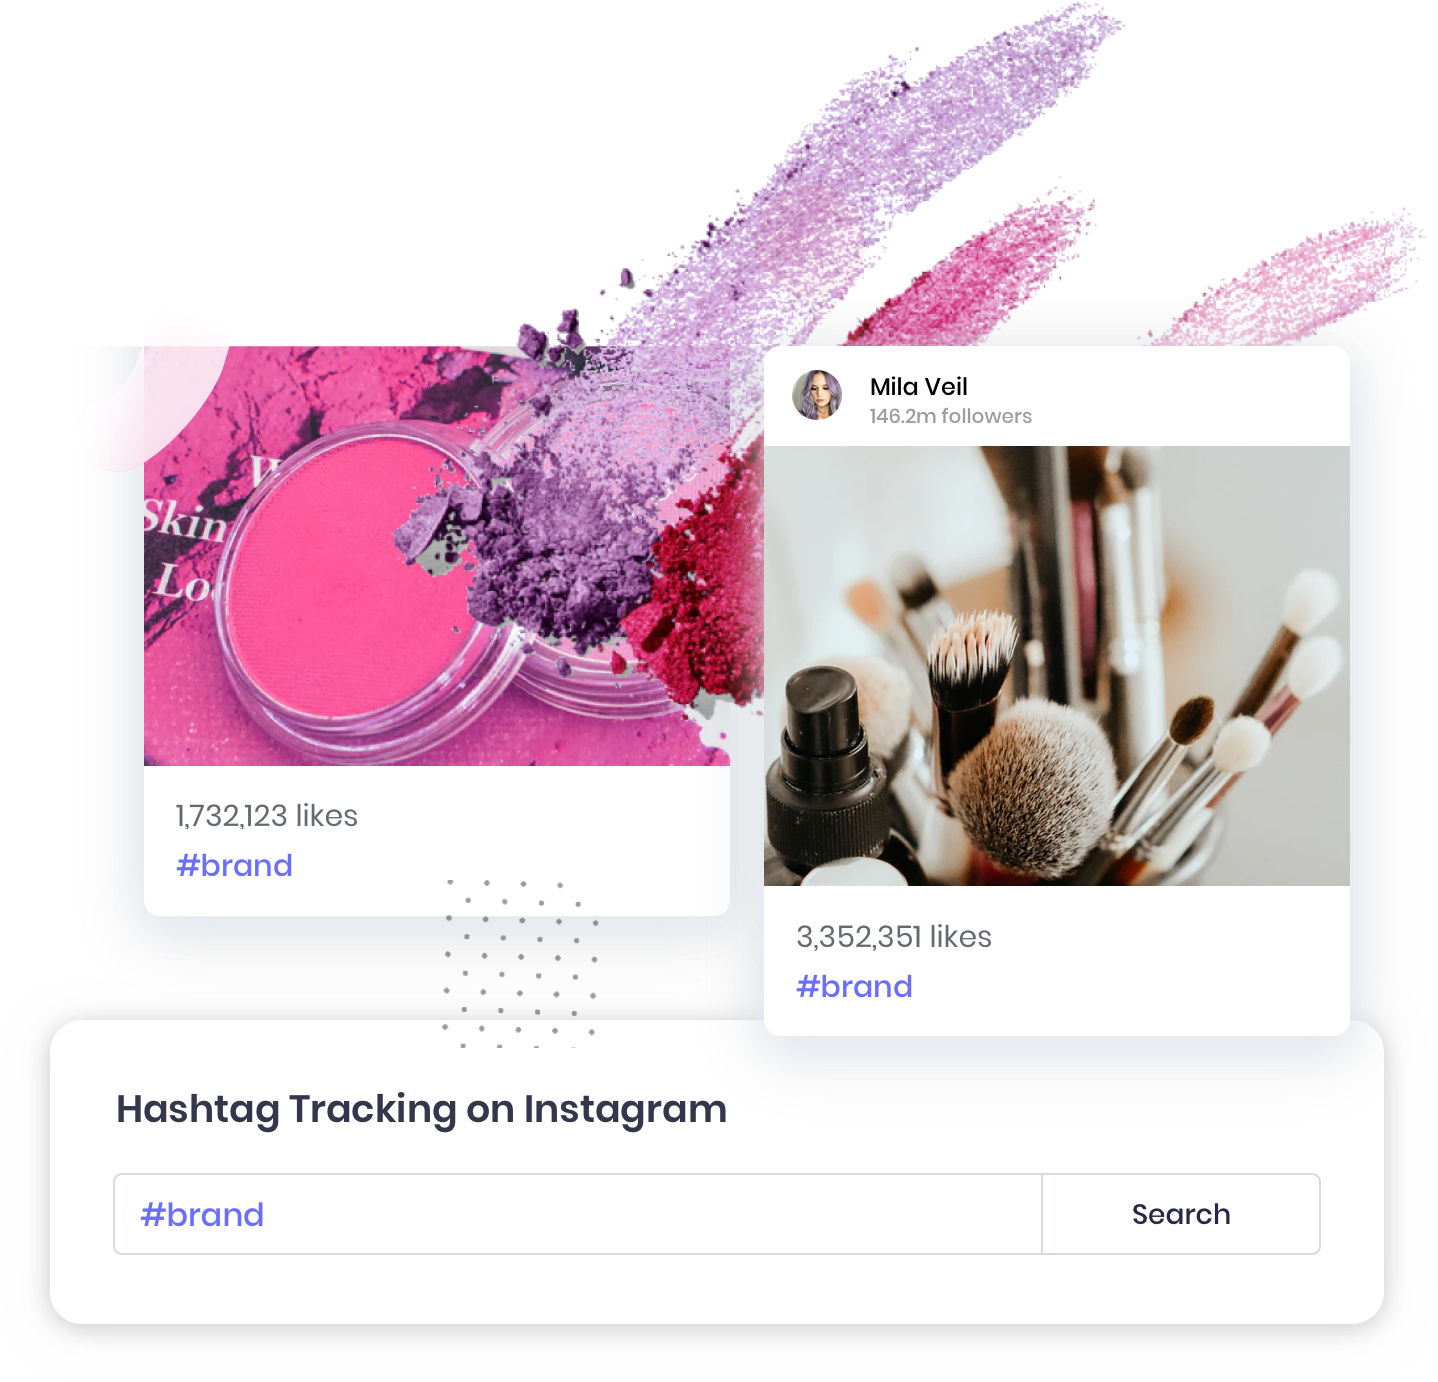 hashtag tracking on instagram tool